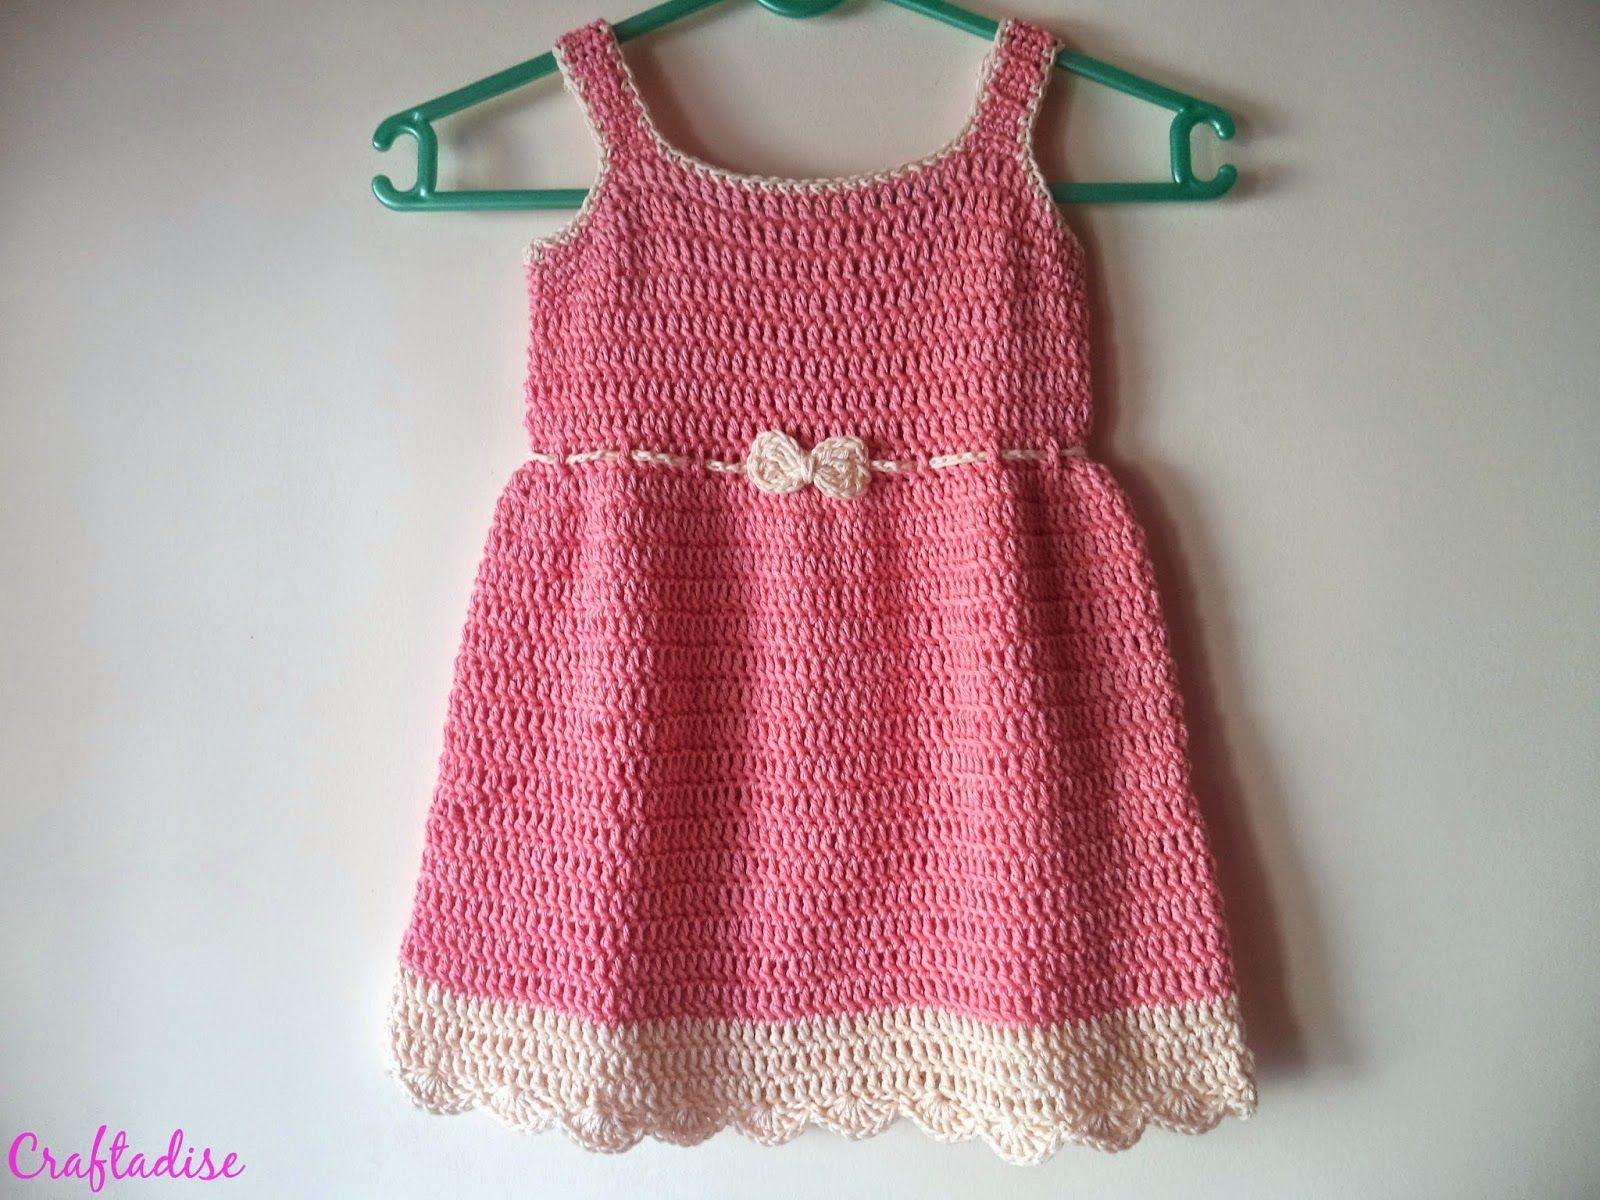 Free crochet pattern crochet summer peach toddler dress baby free crochet pattern crochet summer peach toddler dress bankloansurffo Image collections